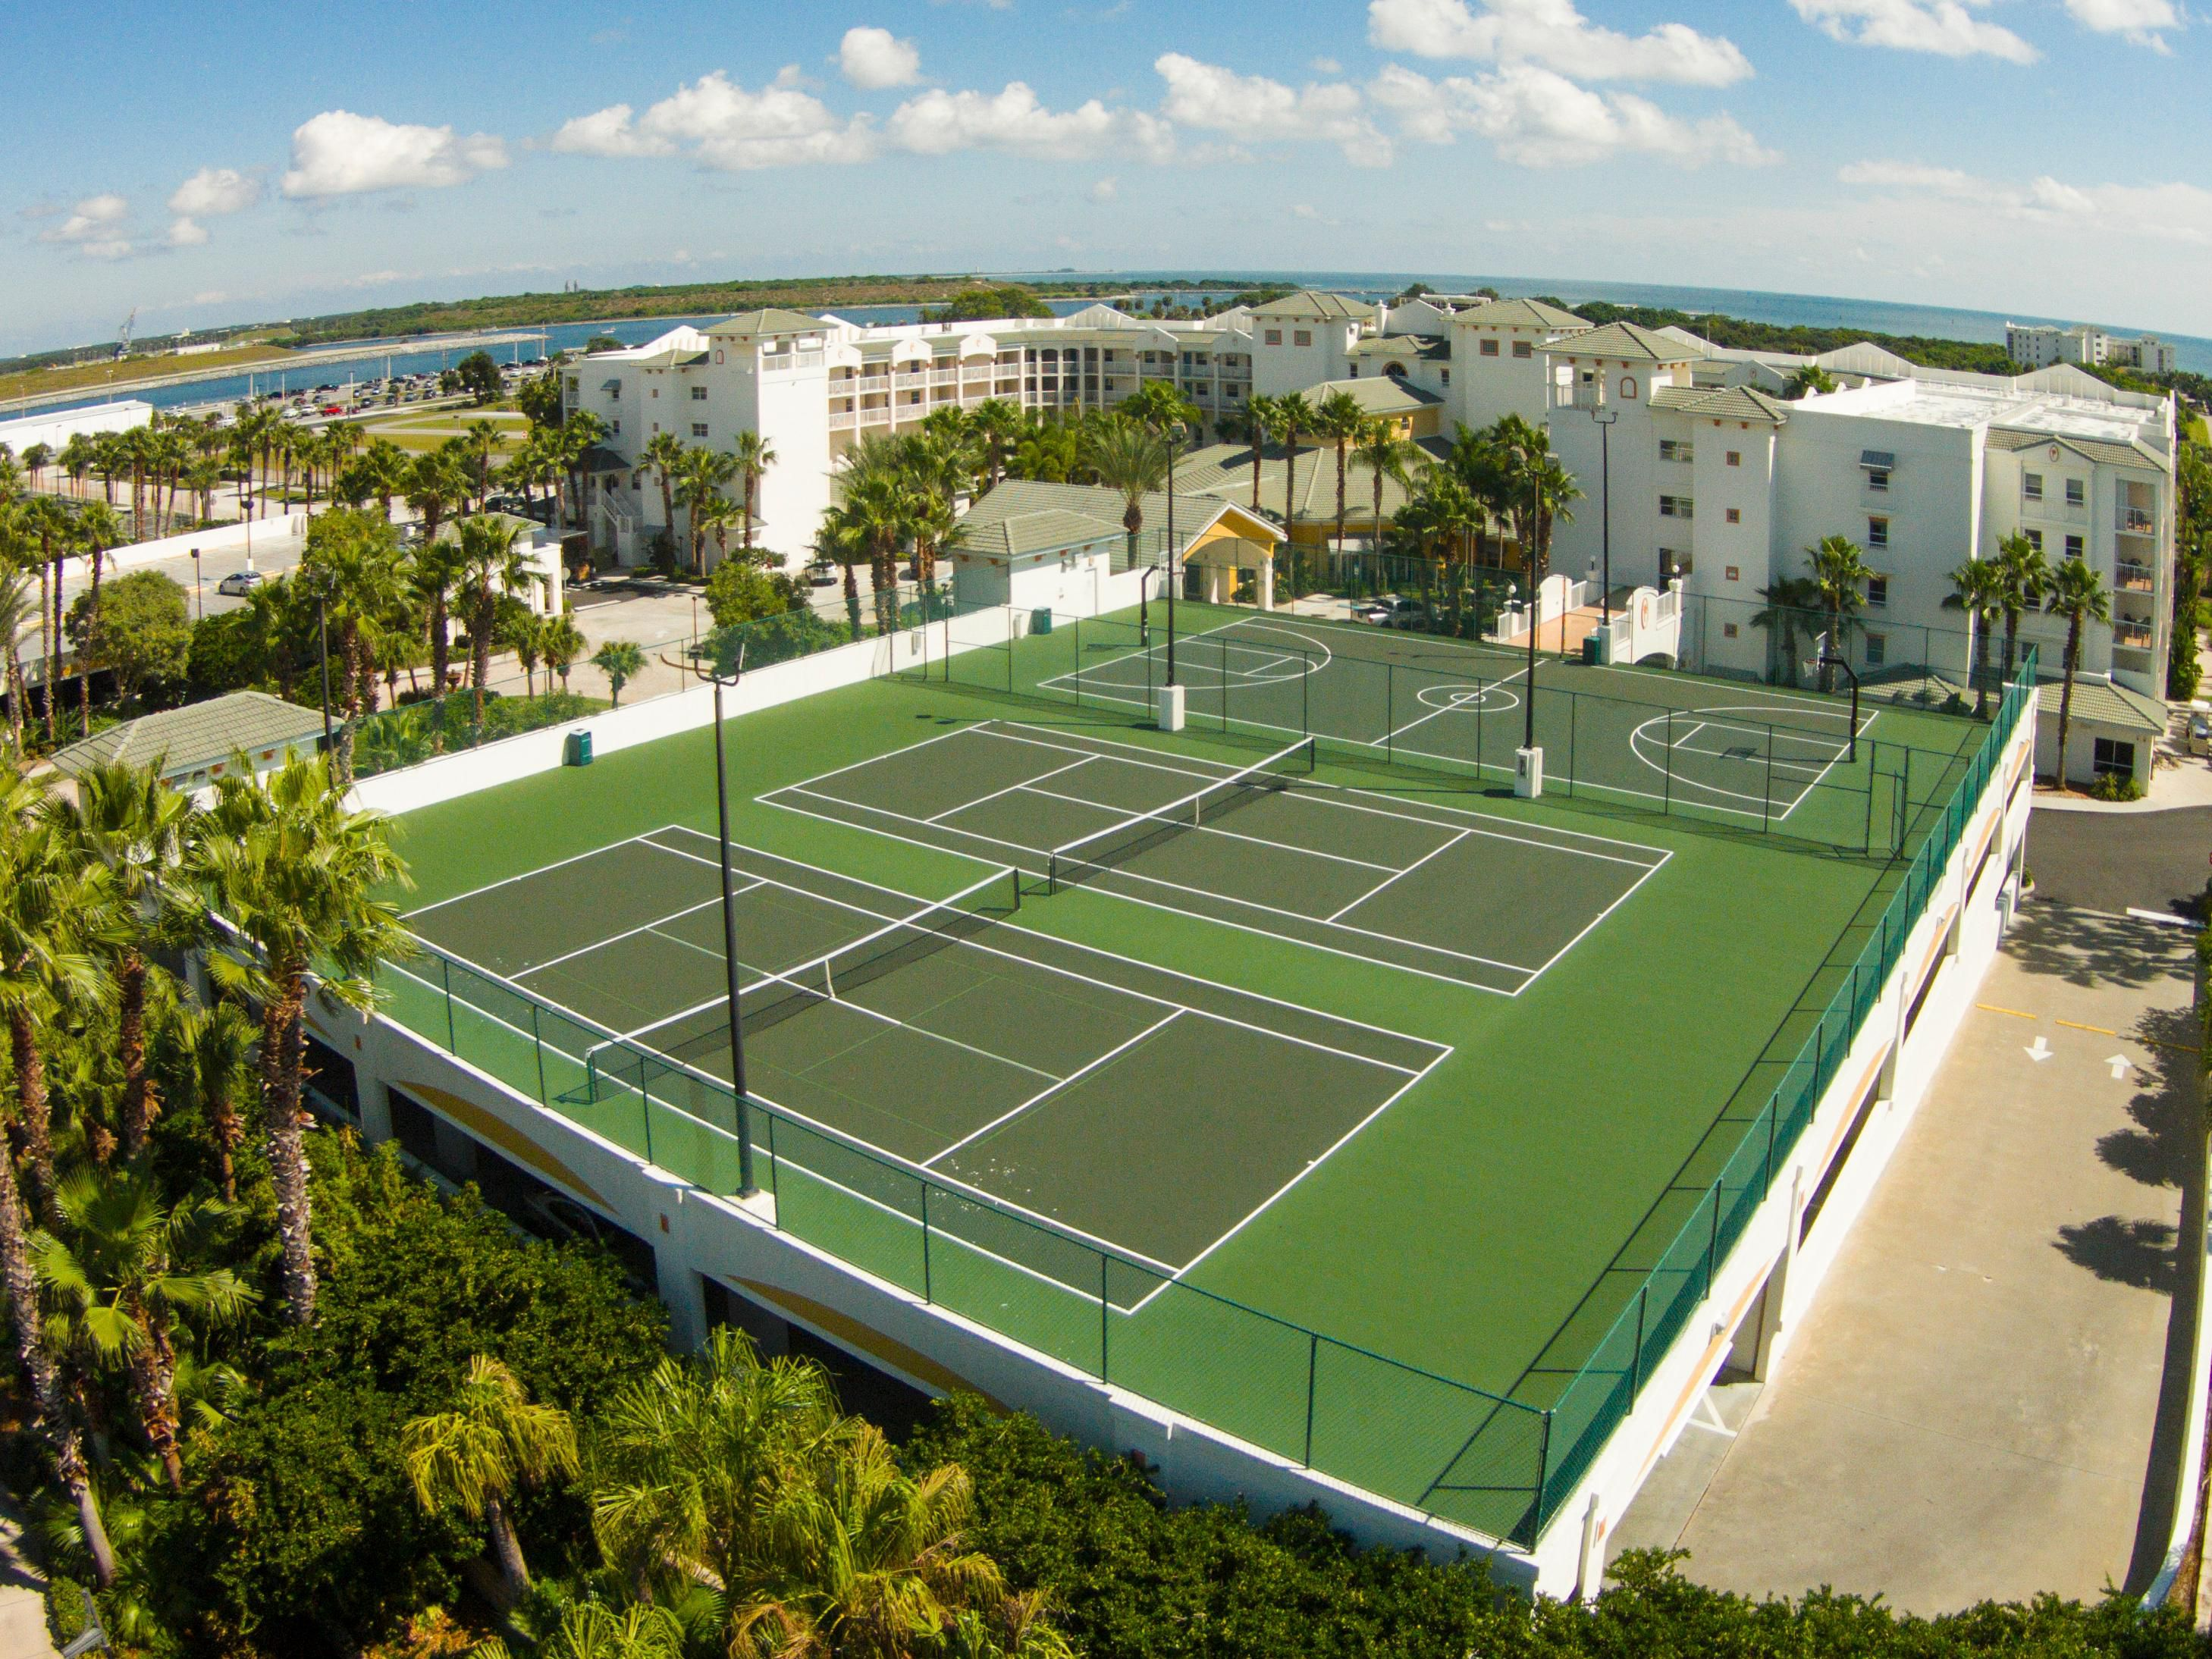 Challenge friends to a game of tennis or basketball on the courts